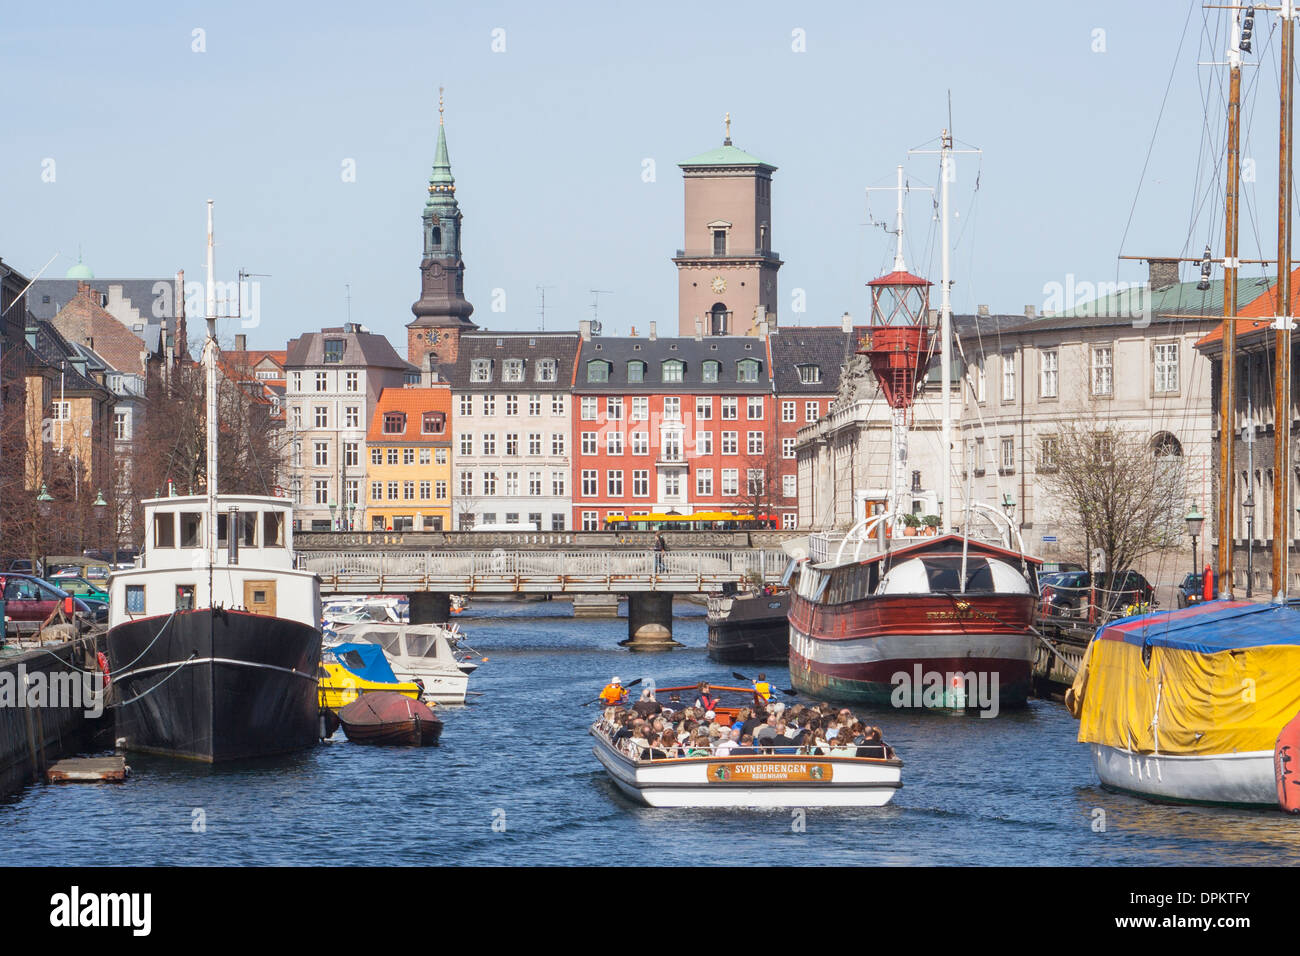 View along Frederiksholms Canal towards the Church of Our Lady, Copenhagen Denmark - Stock Image